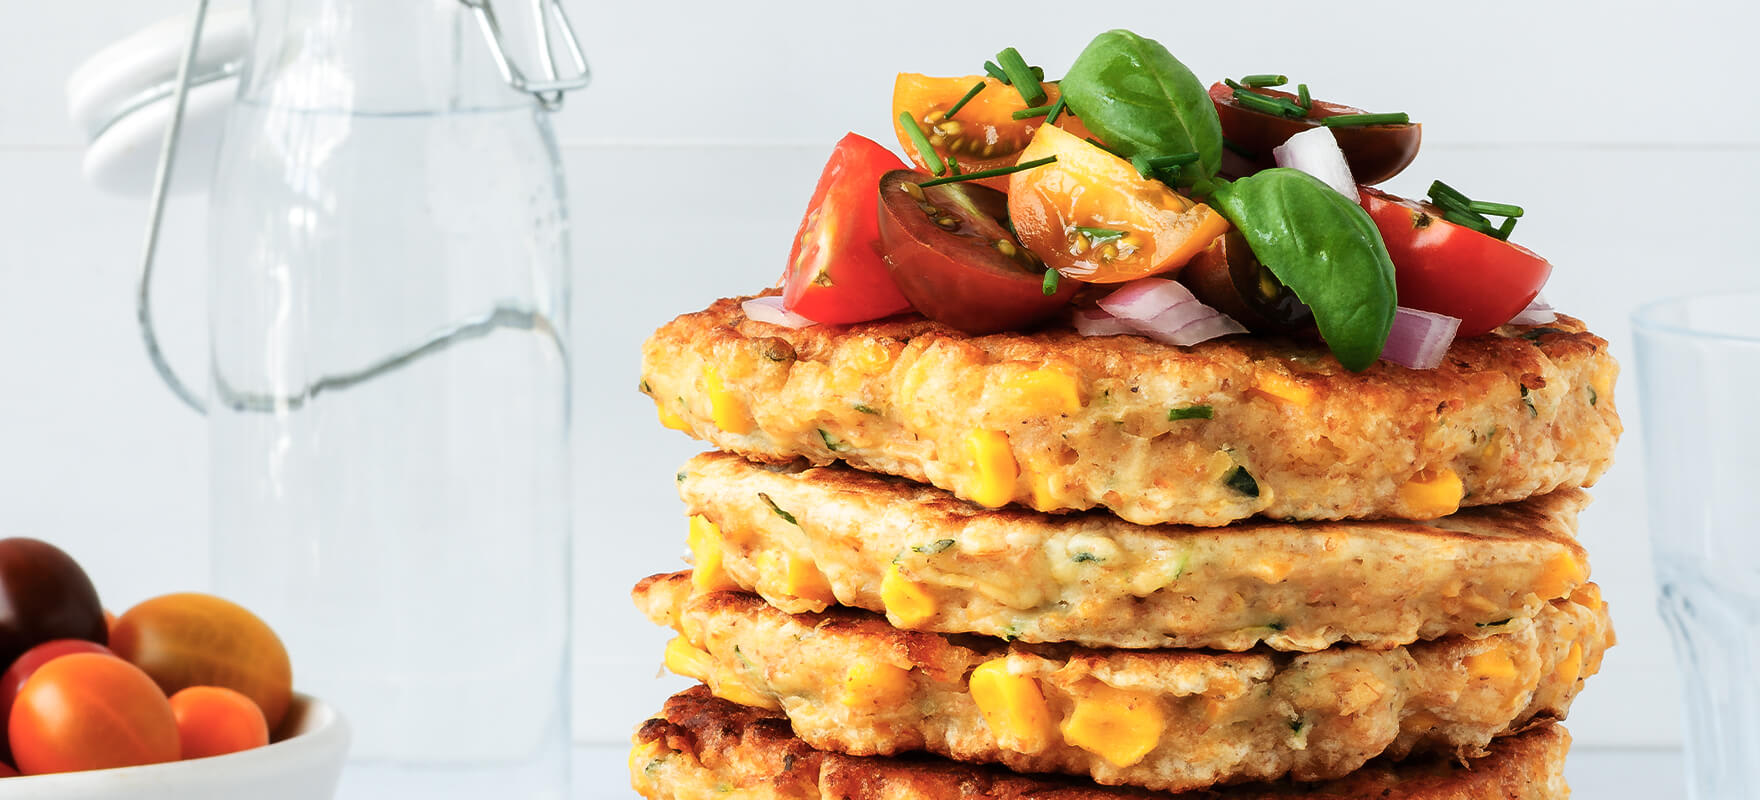 Corn, courgette and chickpea fritters image 1